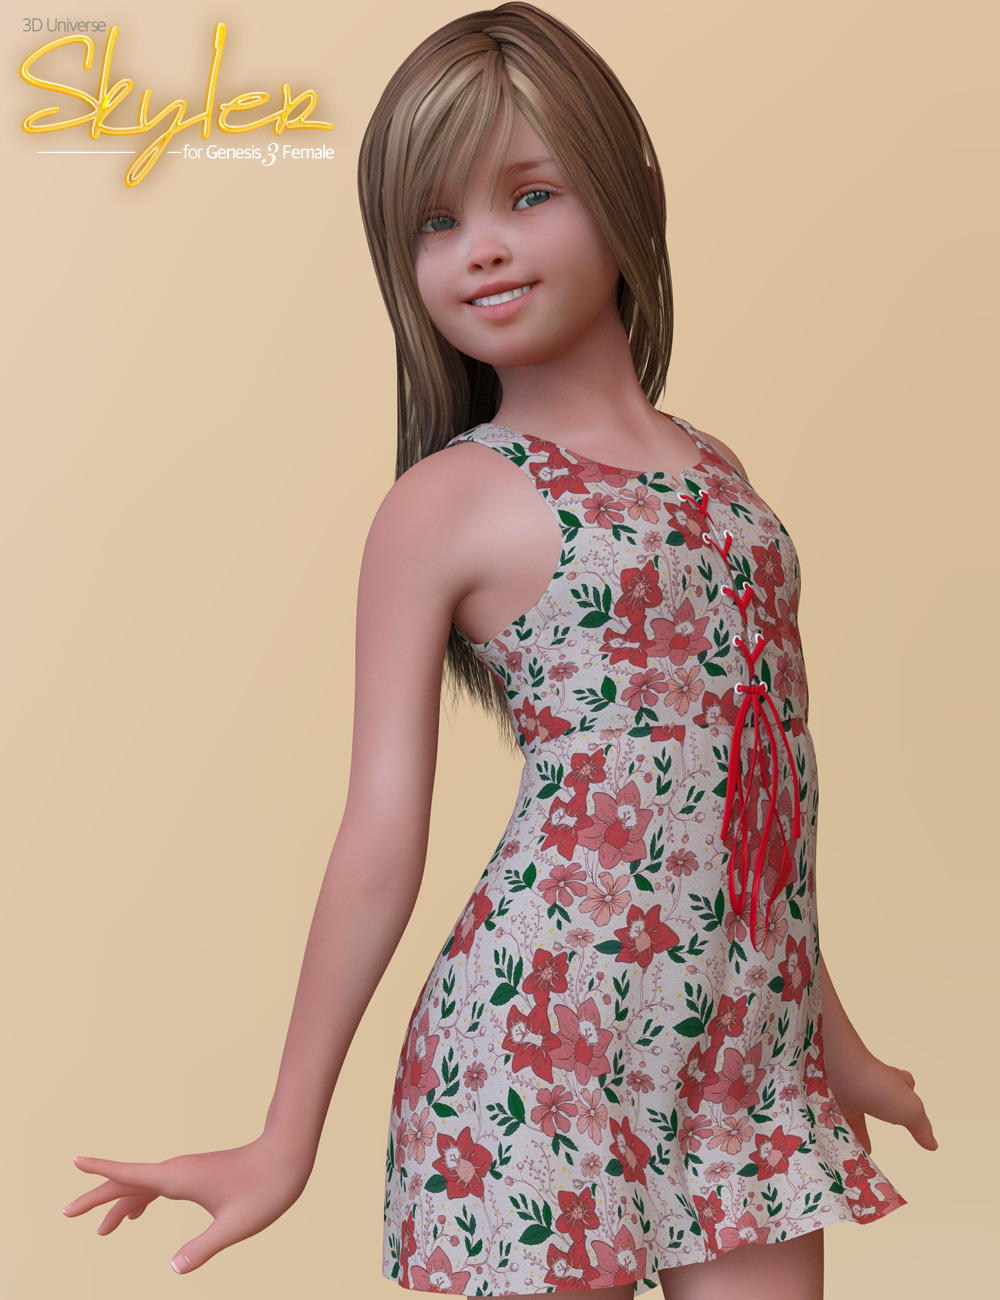 Skyler Clothing for Genesis 3 Female(s) by: 3D Universe, 3D Models by Daz 3D